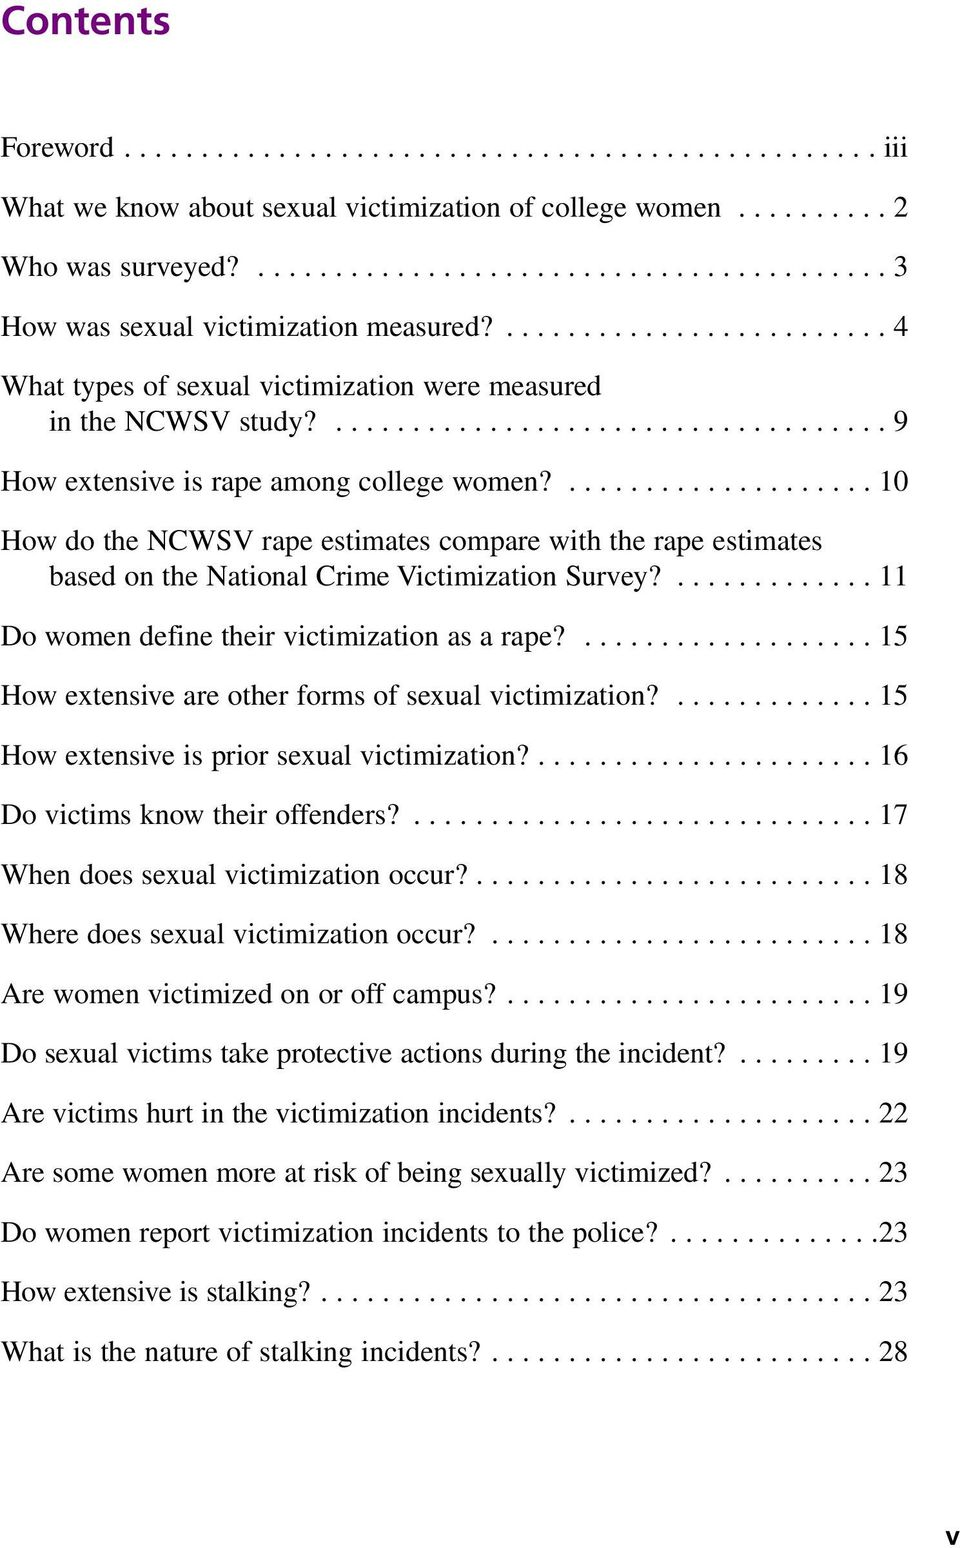 .................... 10 How do the NCWSV rape estimates compare with the rape estimates based on the National Crime Victimization Survey?............. 11 Do women define their victimization as a rape?